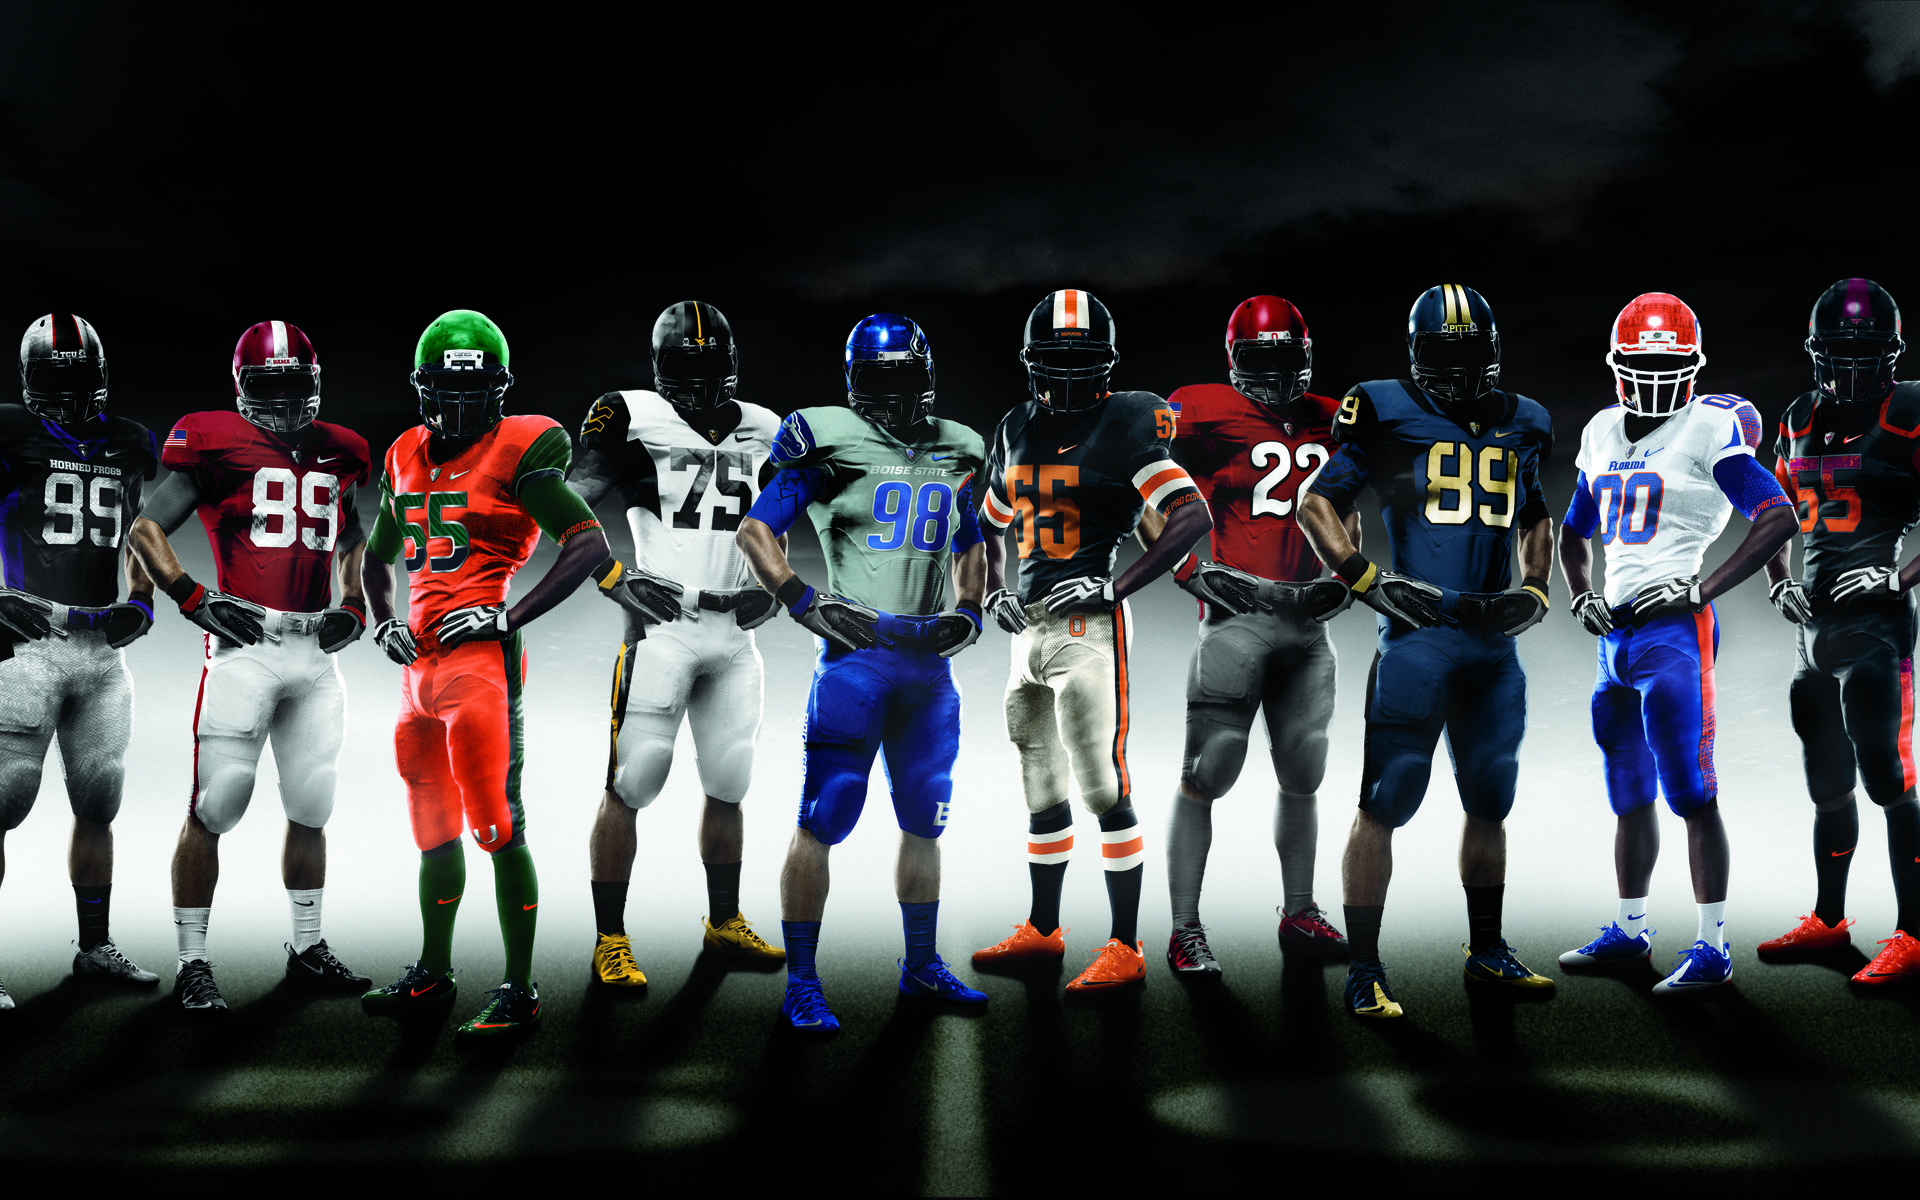 1920x1200 College Football Wallpaper, NCAA, Nike Pro combat in 2010 | HD .